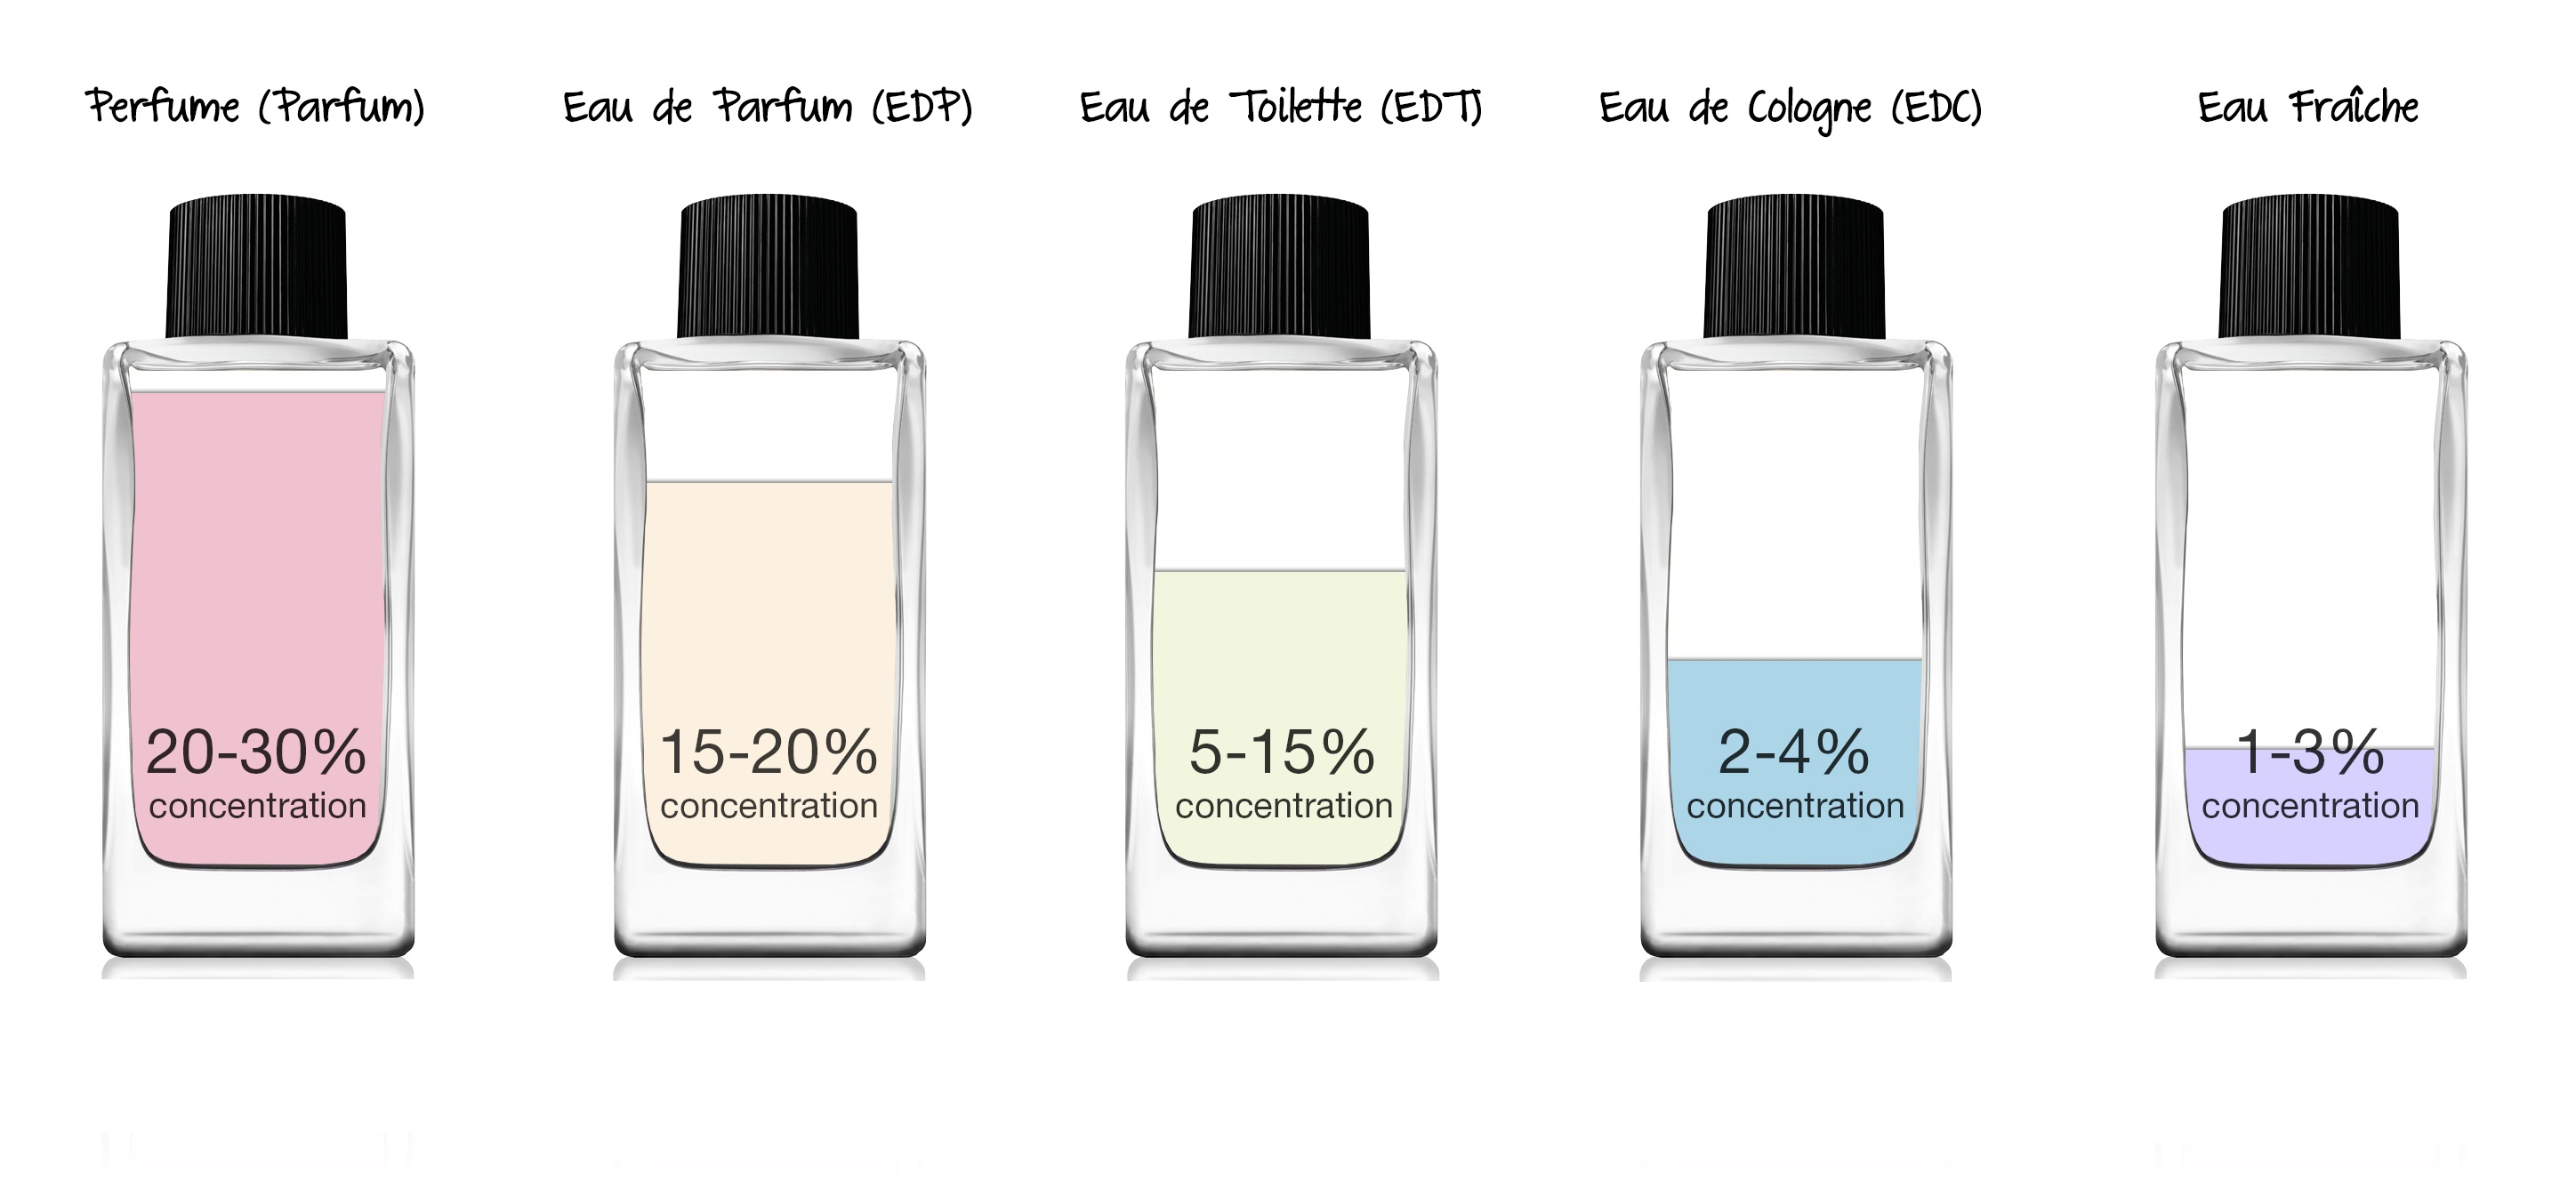 How To Pick The Right Cologne/Perfume For You?